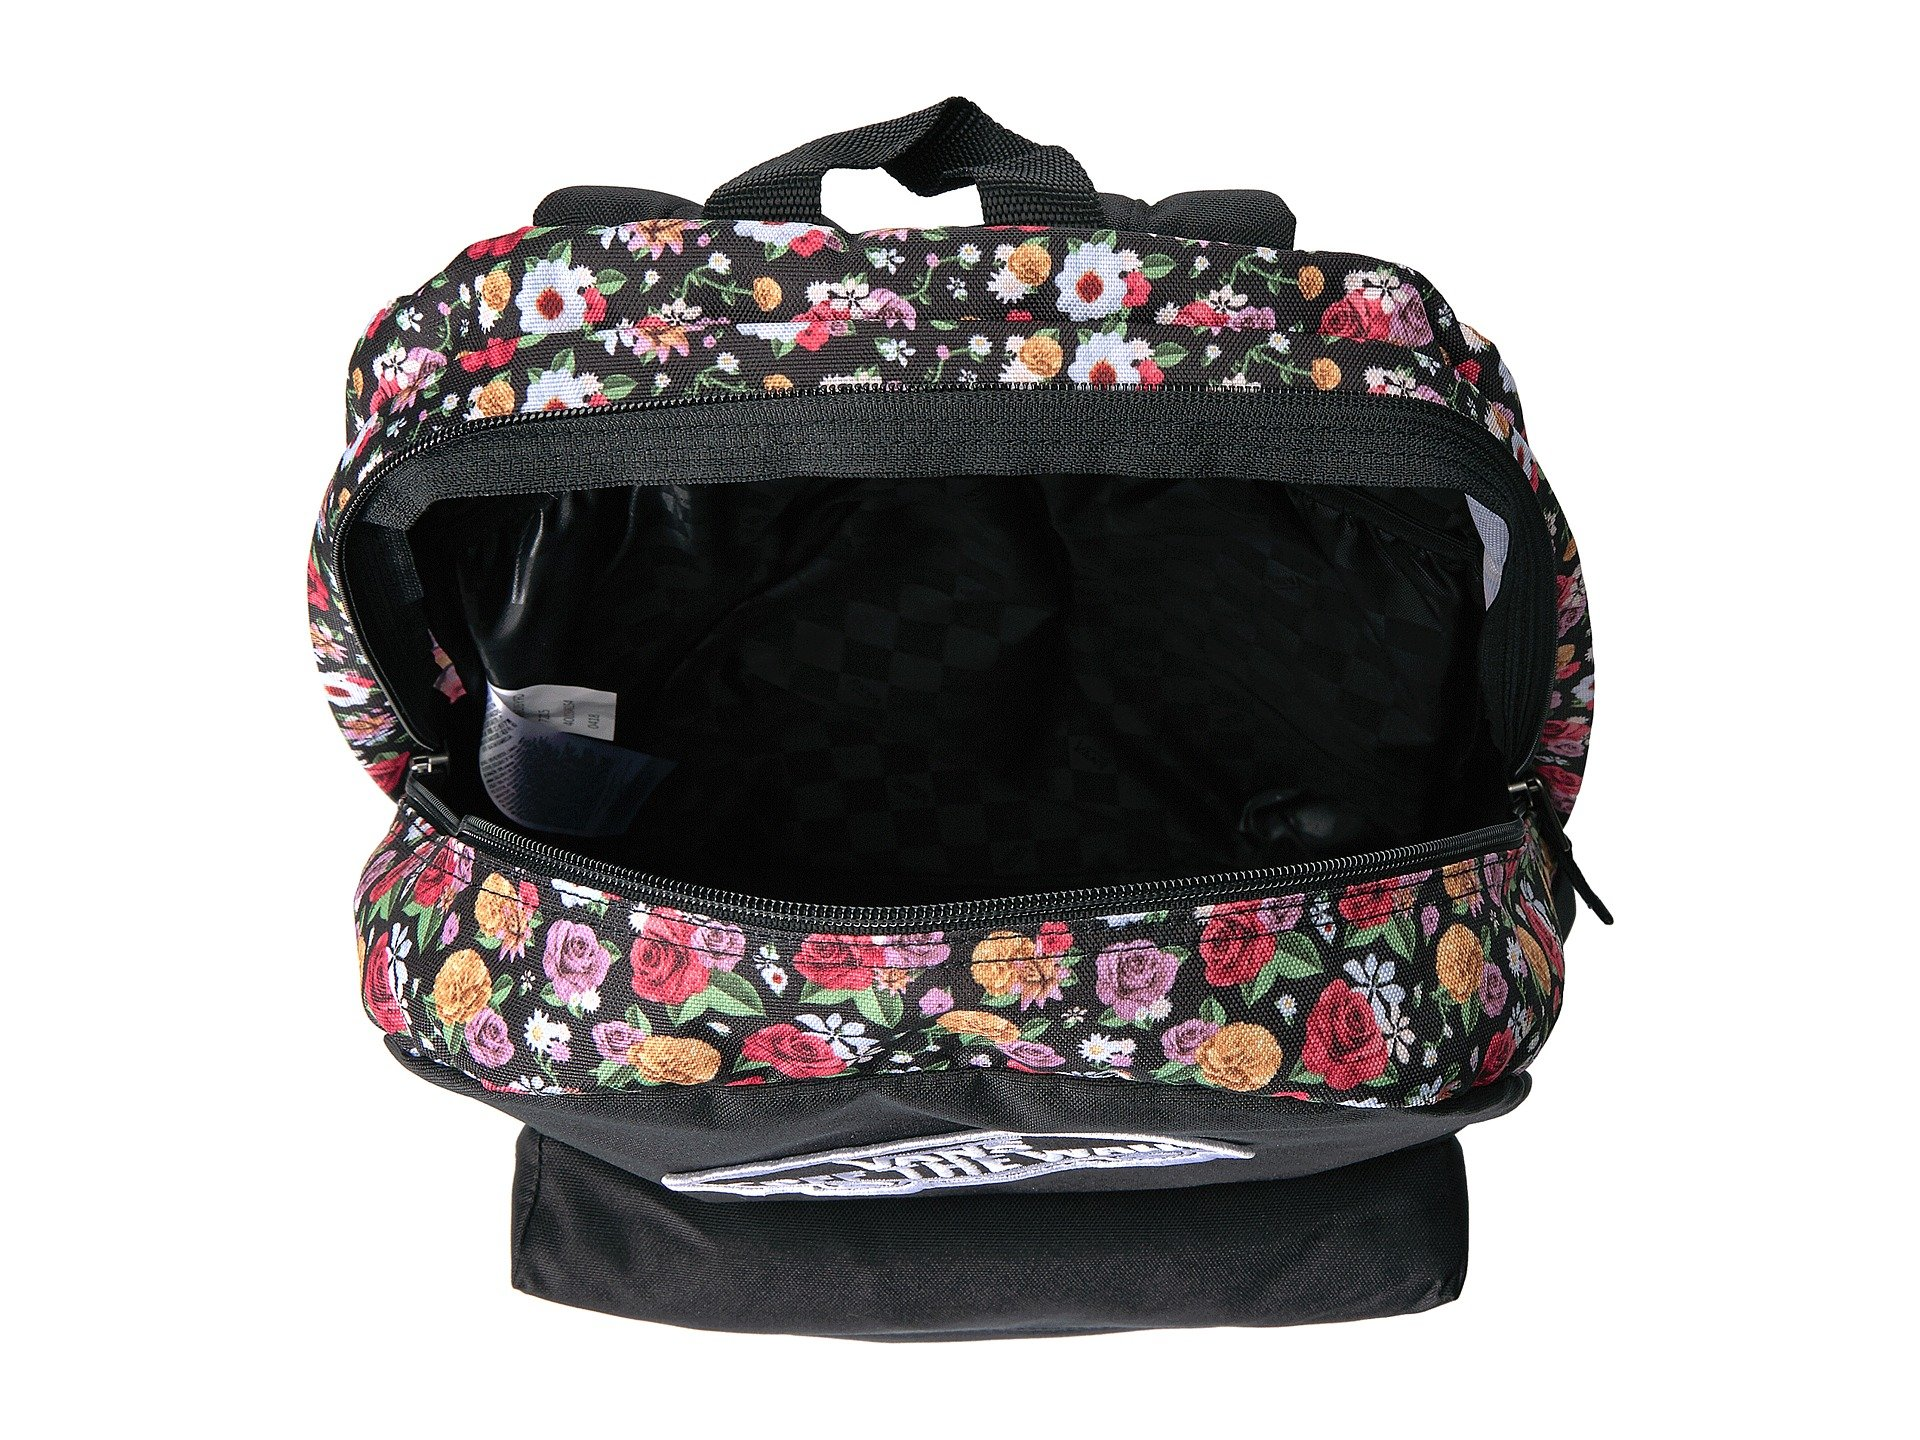 Realm Backpack Mixed Backpack Backpack Realm Vans Mixed Vans Floral Floral Vans Realm 6wqrg5cwUv